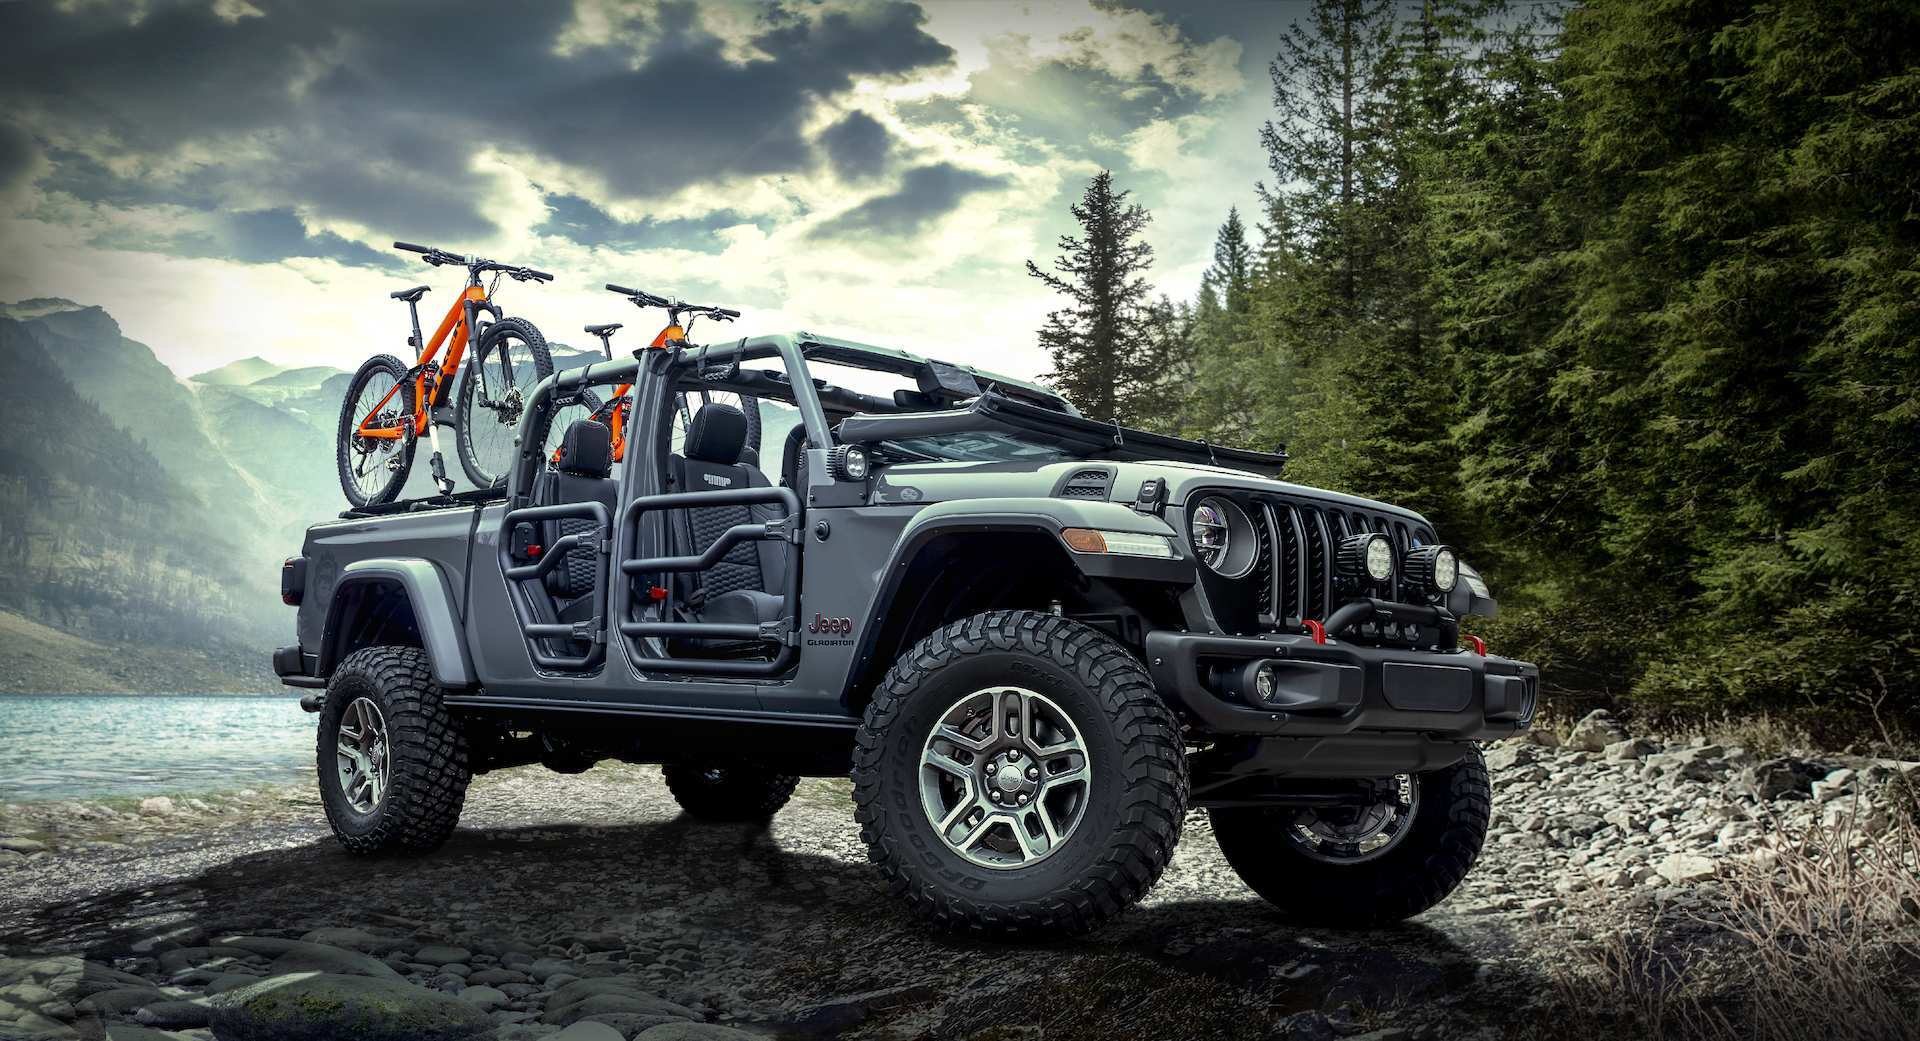 71 All New 2020 Jeep Gladiator Aftermarket Parts Ratings